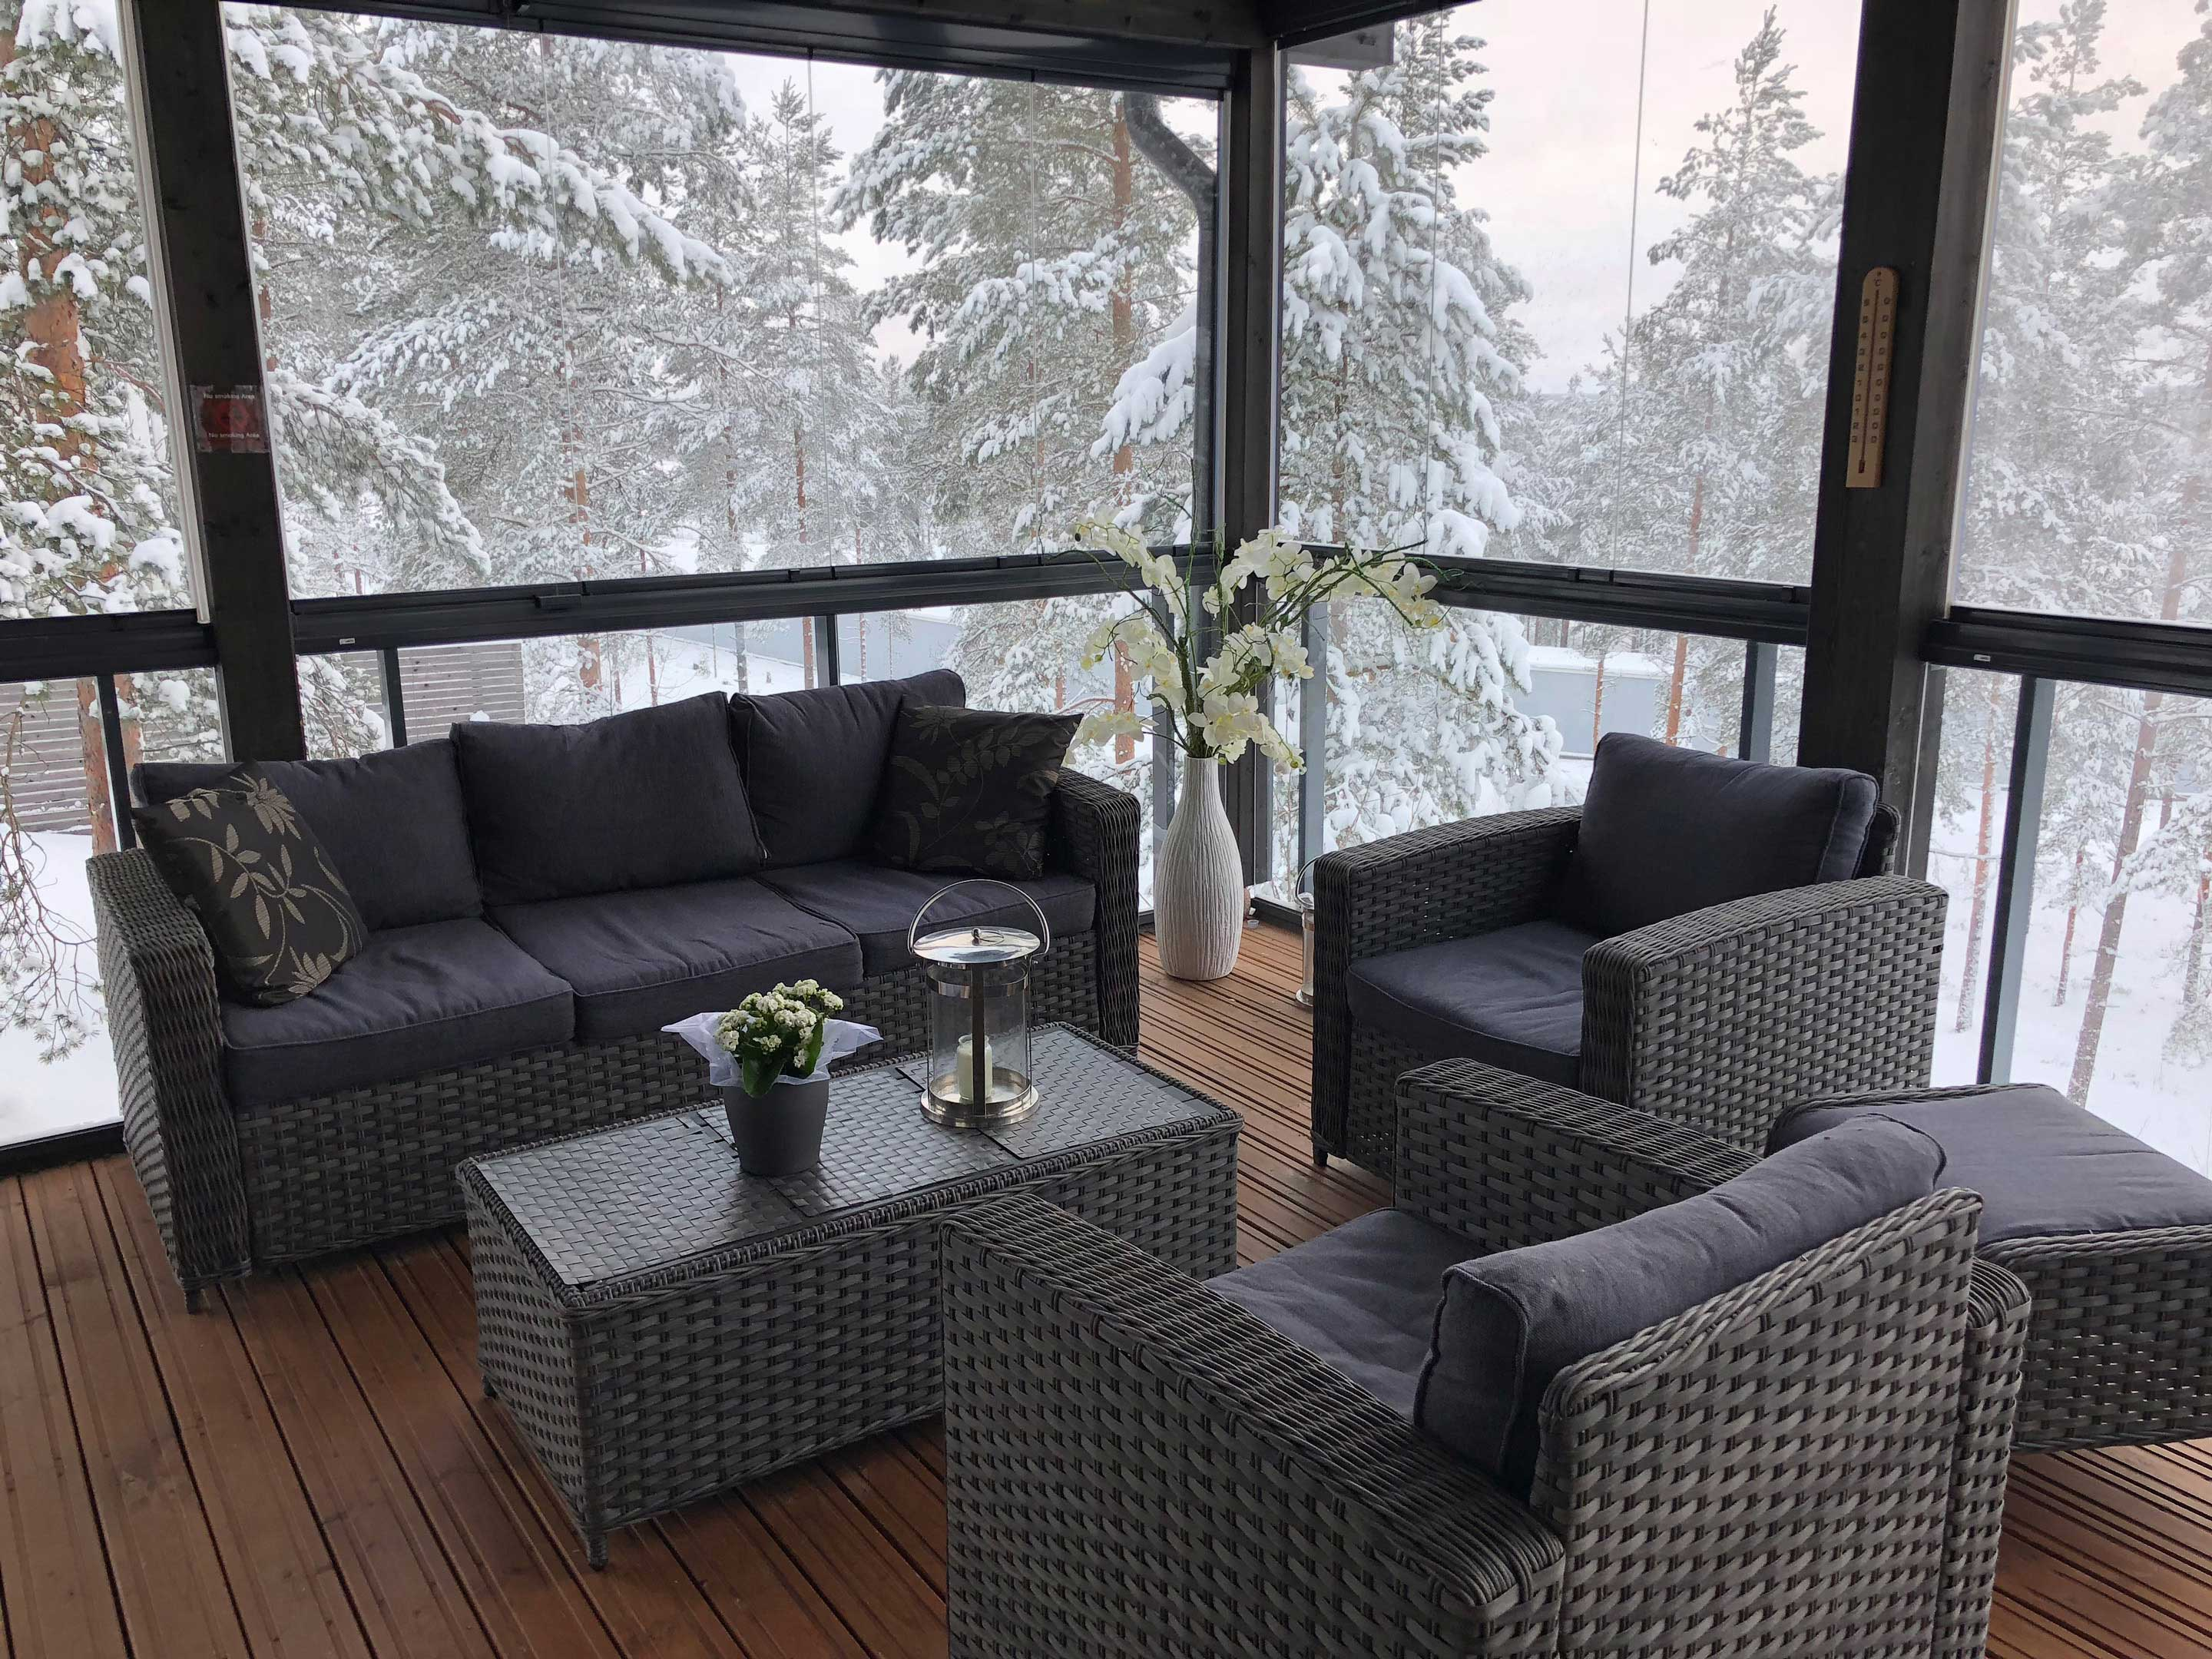 lumon canada, retractable glass enclosure during the winter months